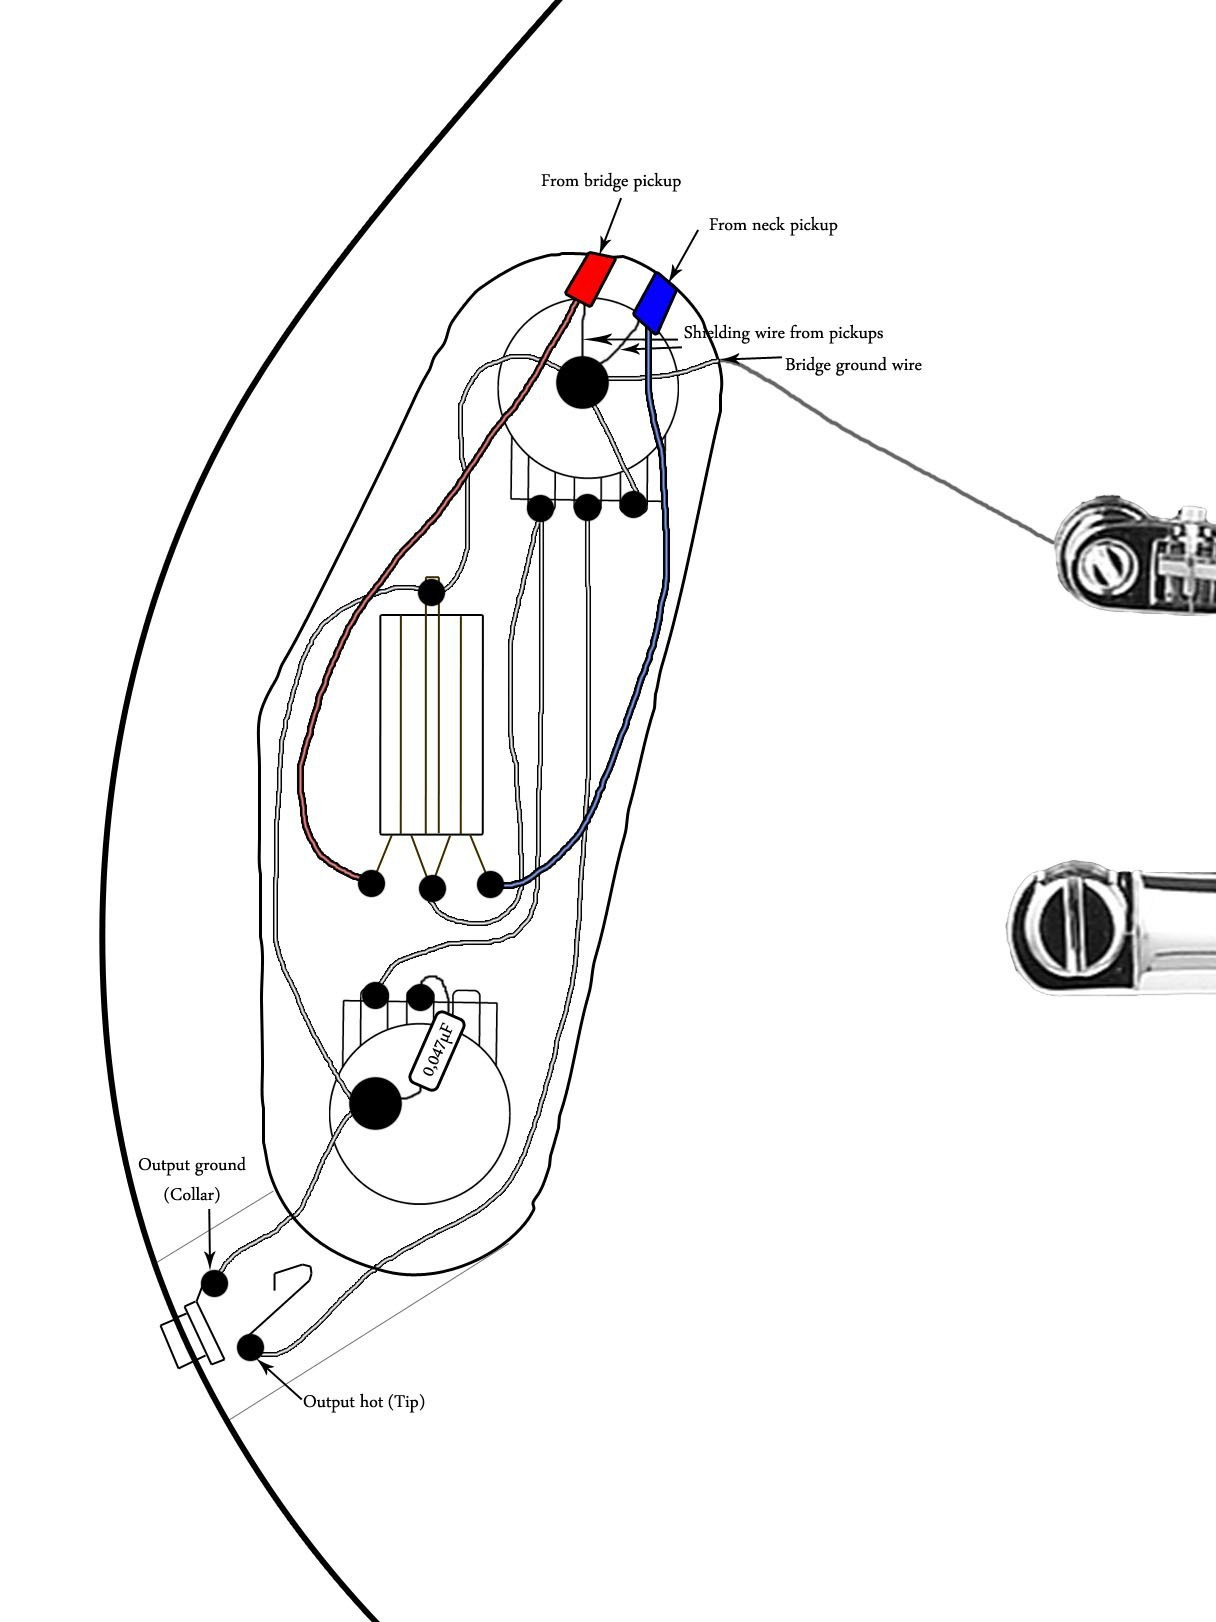 epiphone les paul special wiring diagram Download-Gibson Les Paul Special Wiring Diagram Best Wiring Diagram For Les Paul Junior Best Les Paul Junior Wiring 5-f